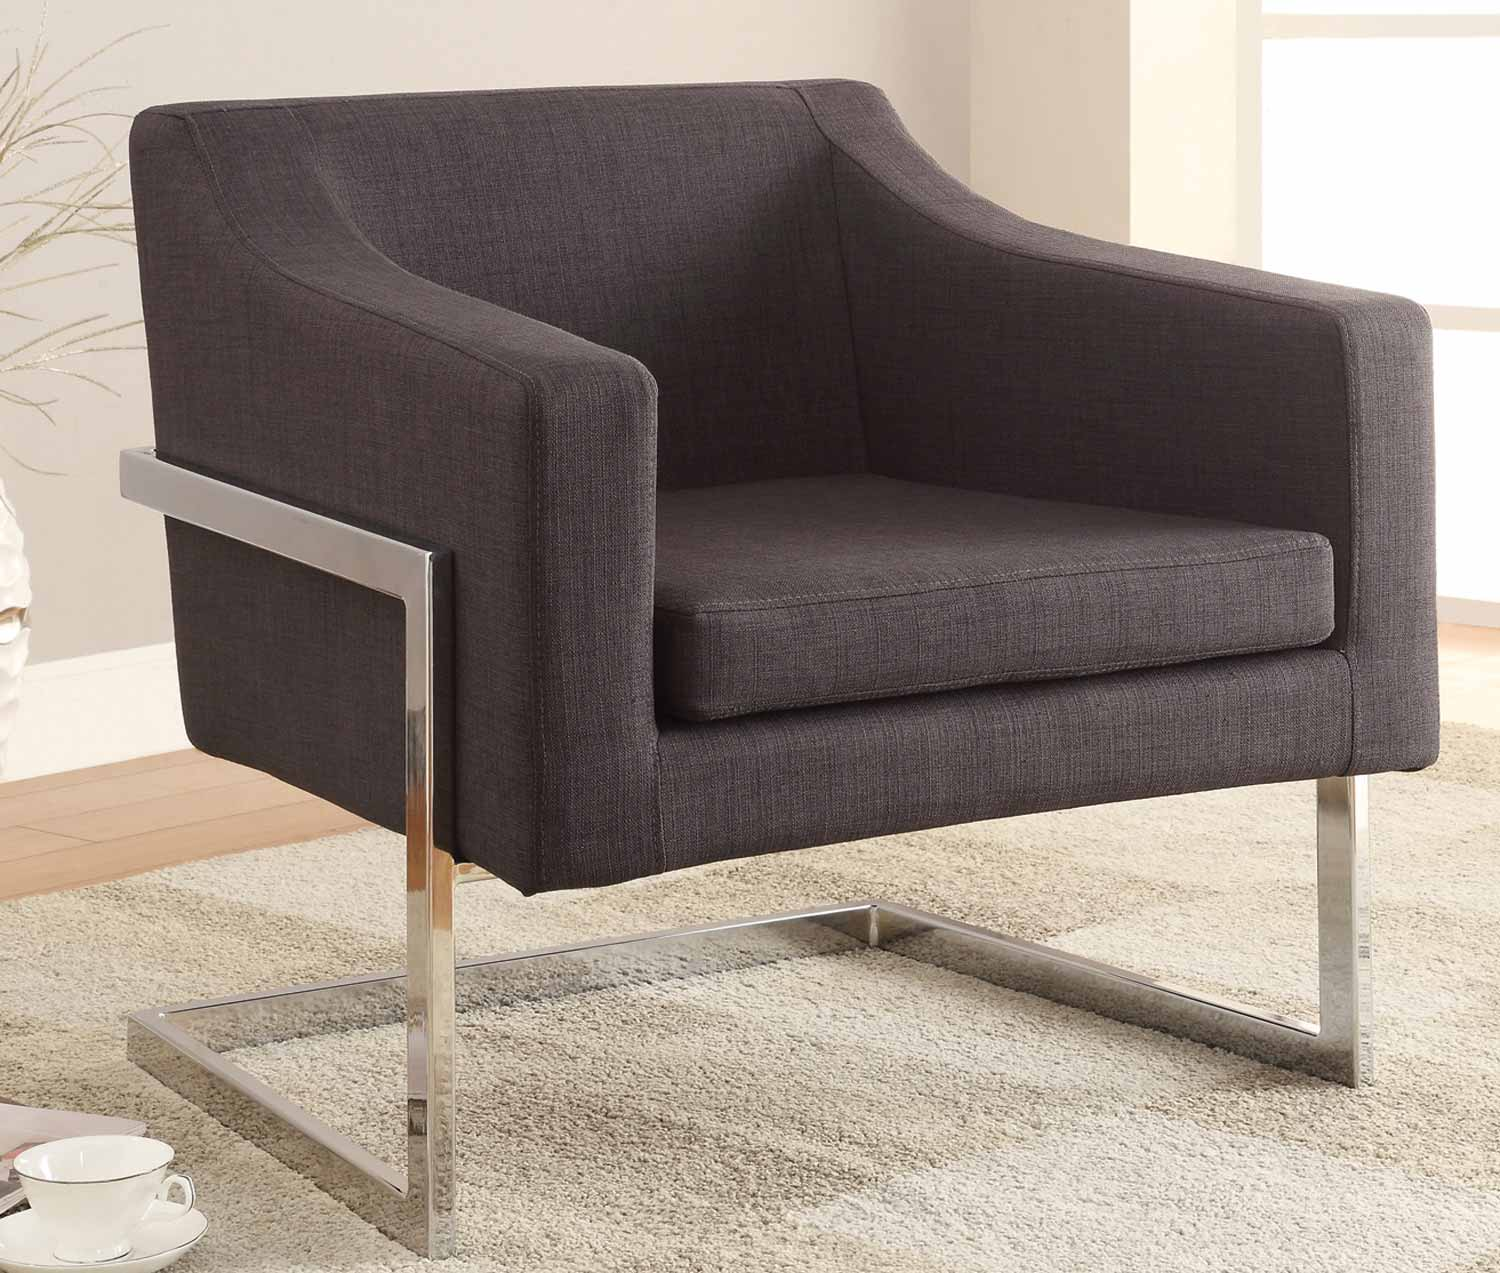 902530 Accent Chair - Grey